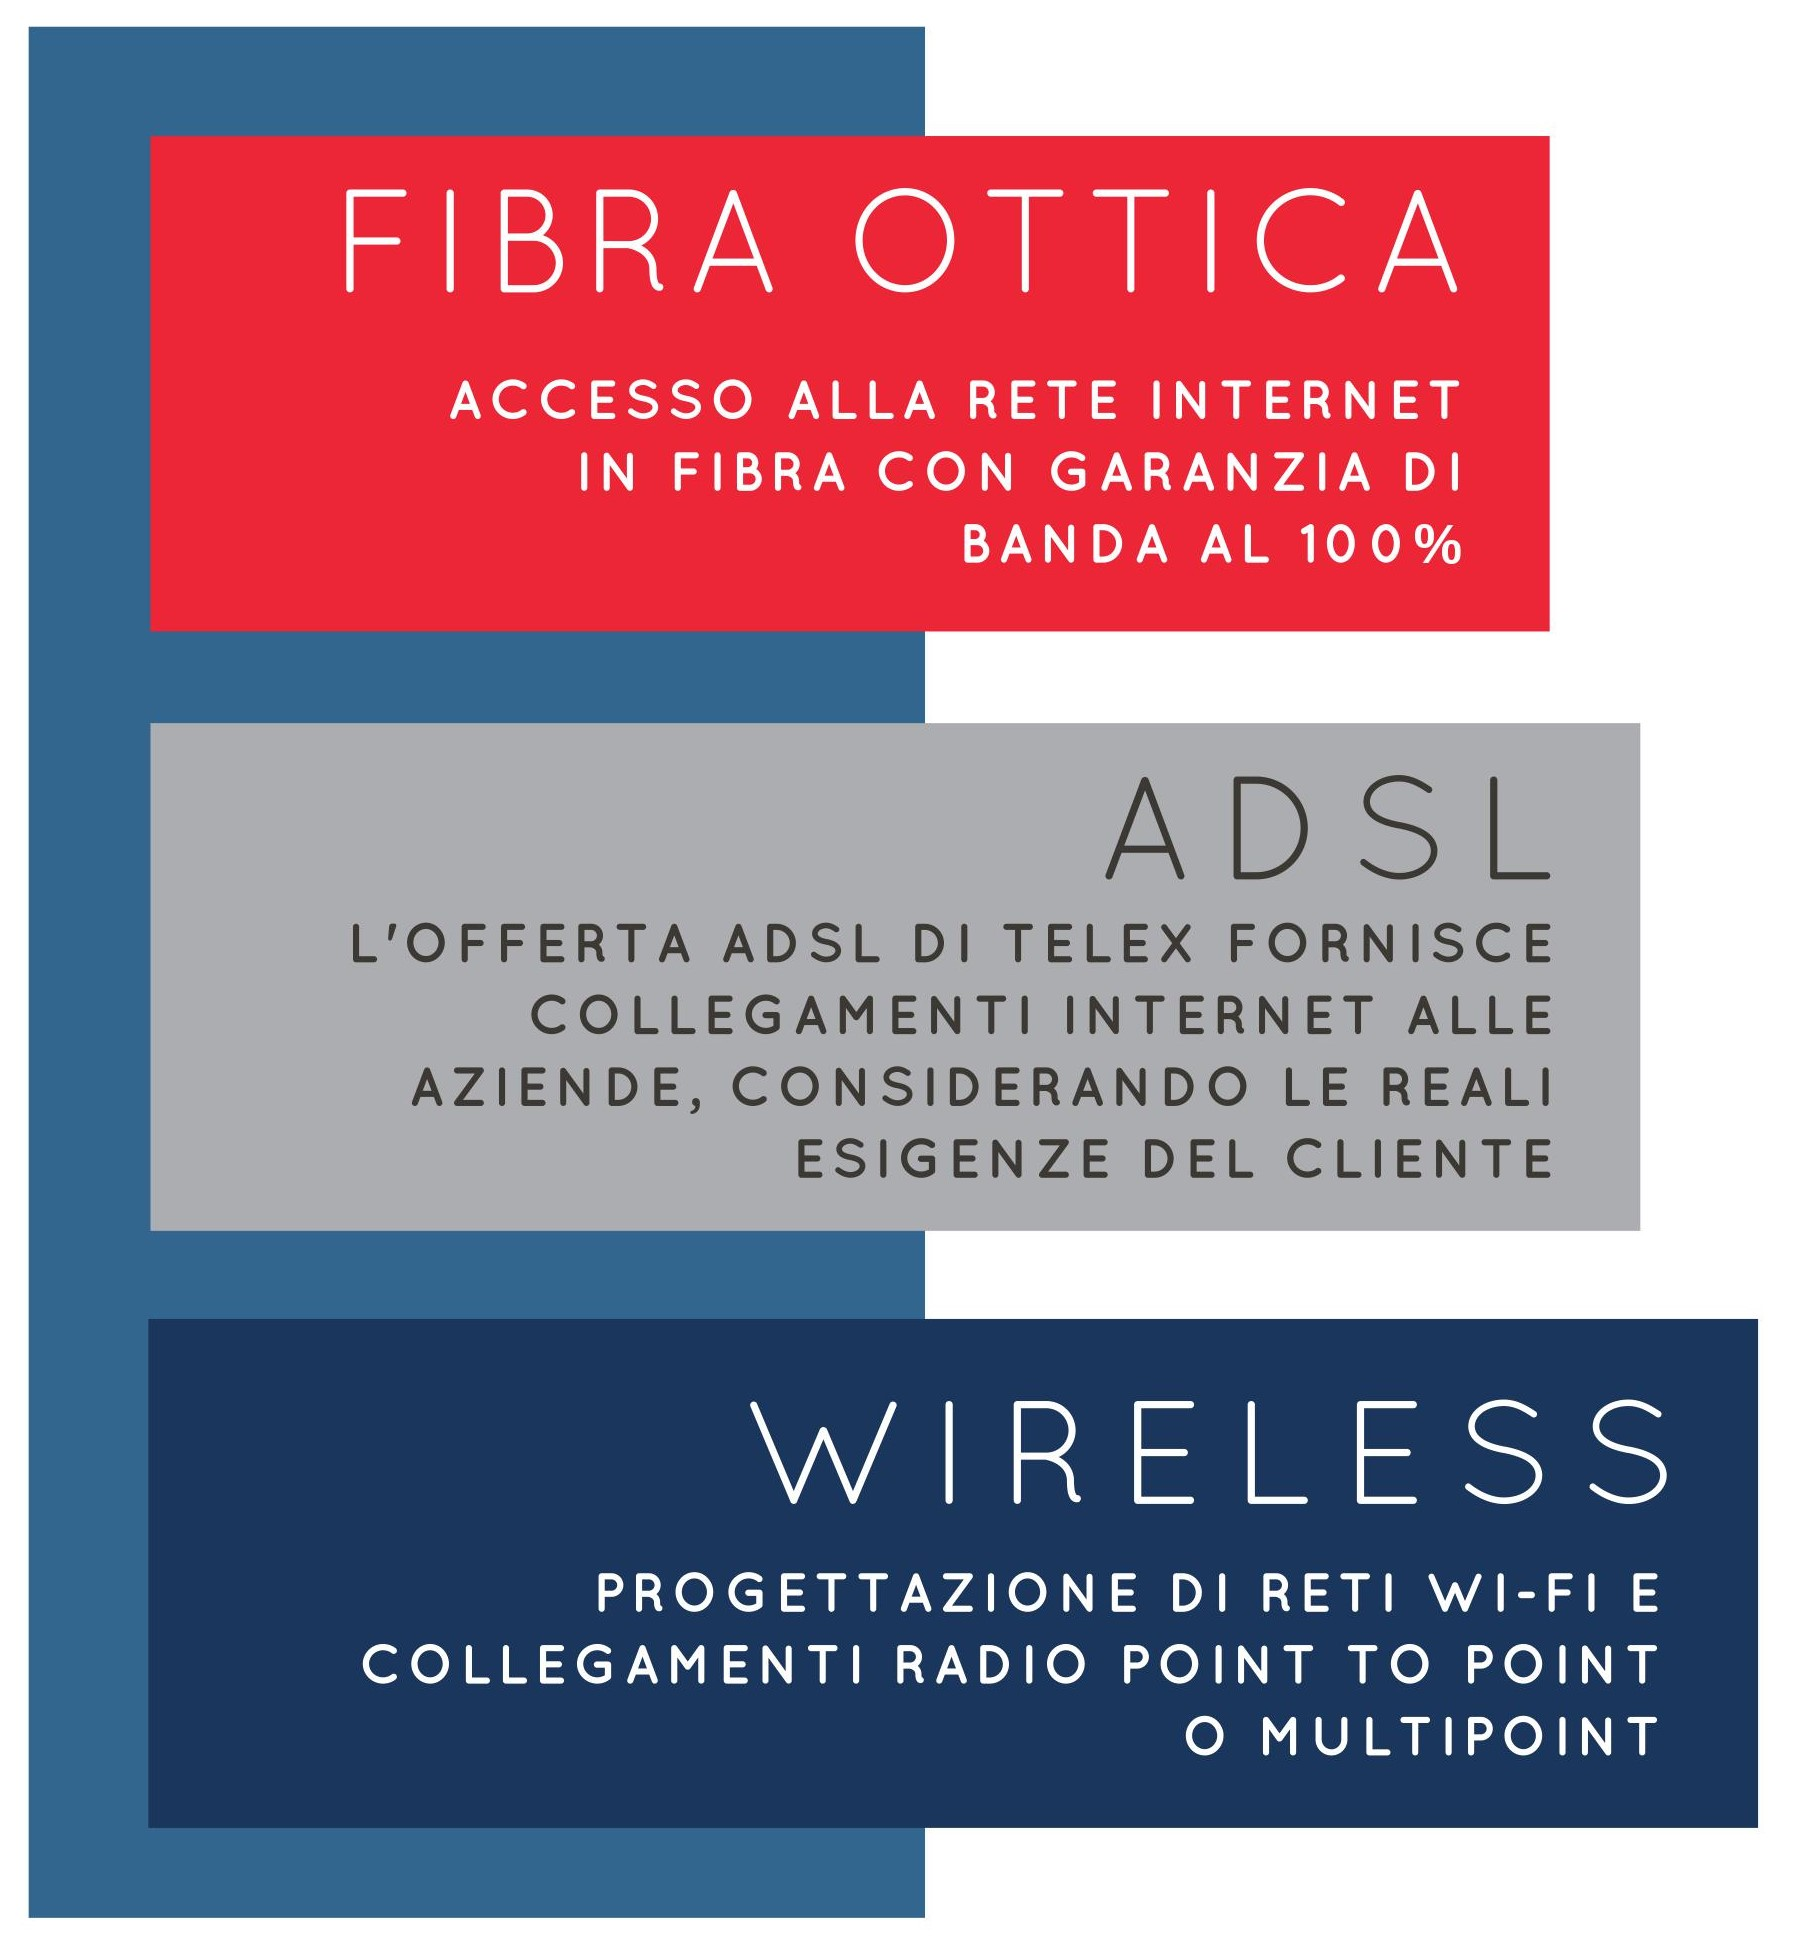 fibra ottica adsl wireless telex